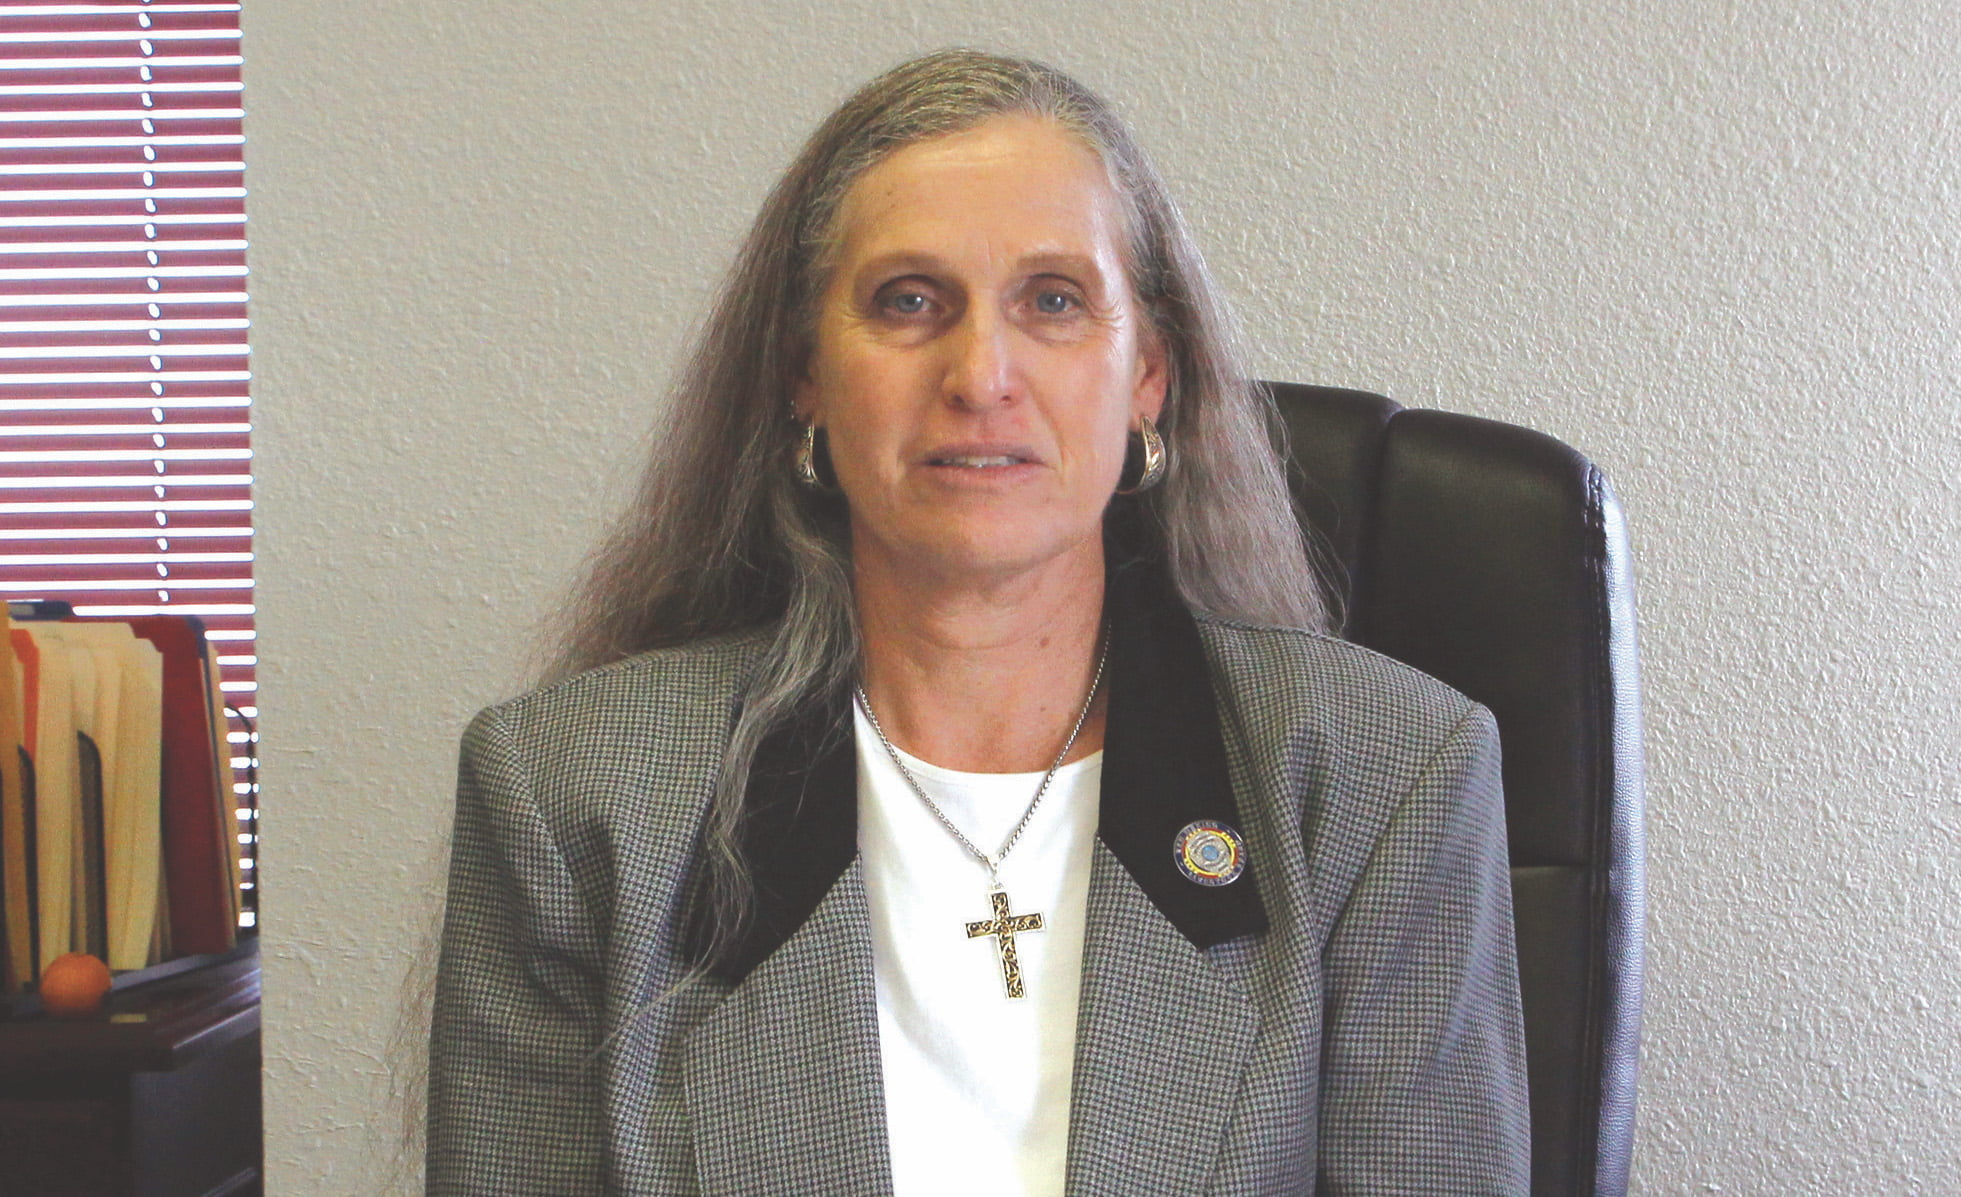 Garland is first female director of Livestock Board